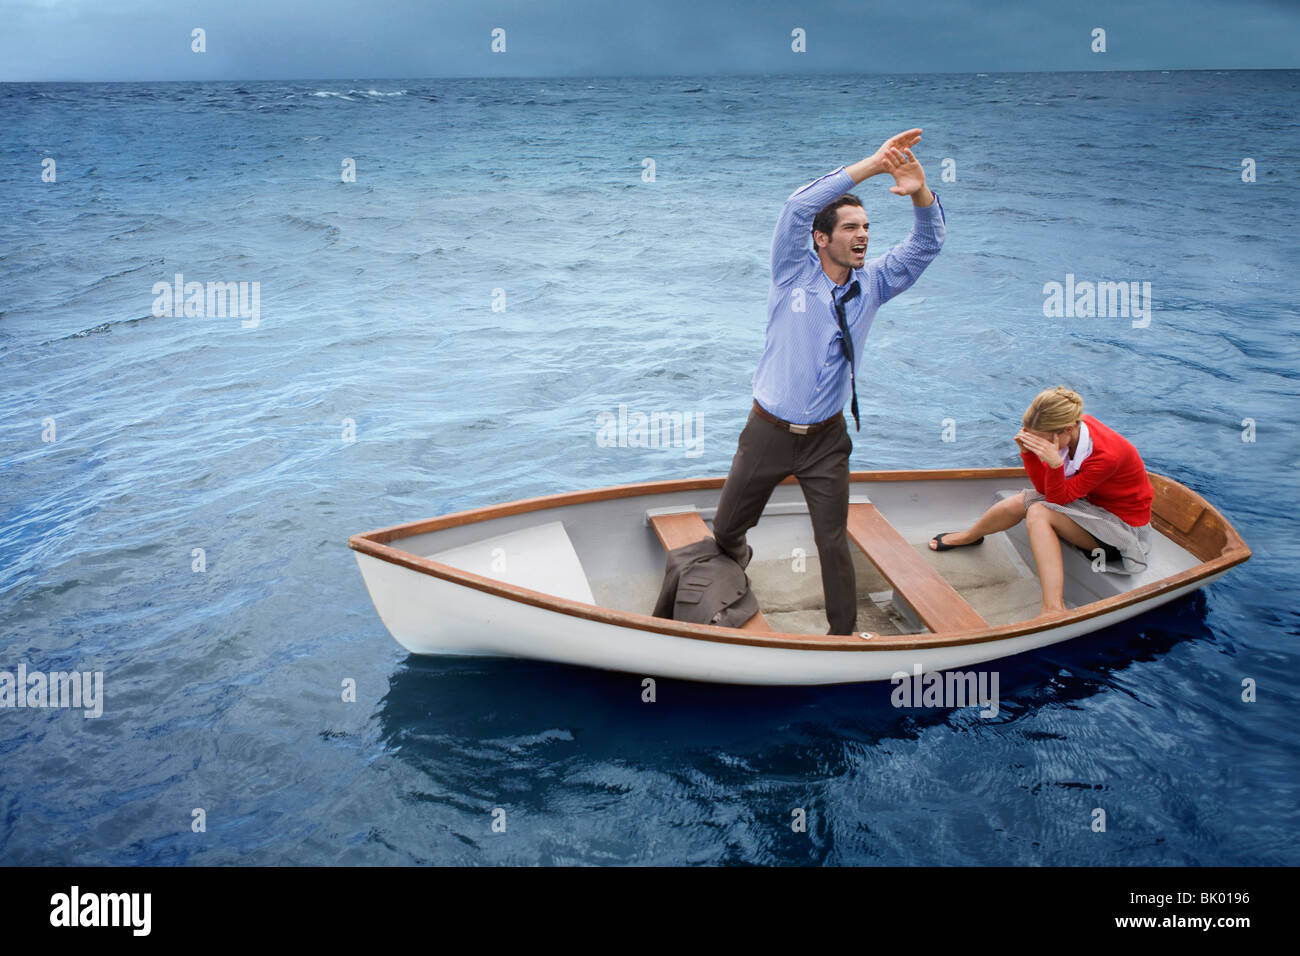 Couple in a disastrous situation Stock Photo